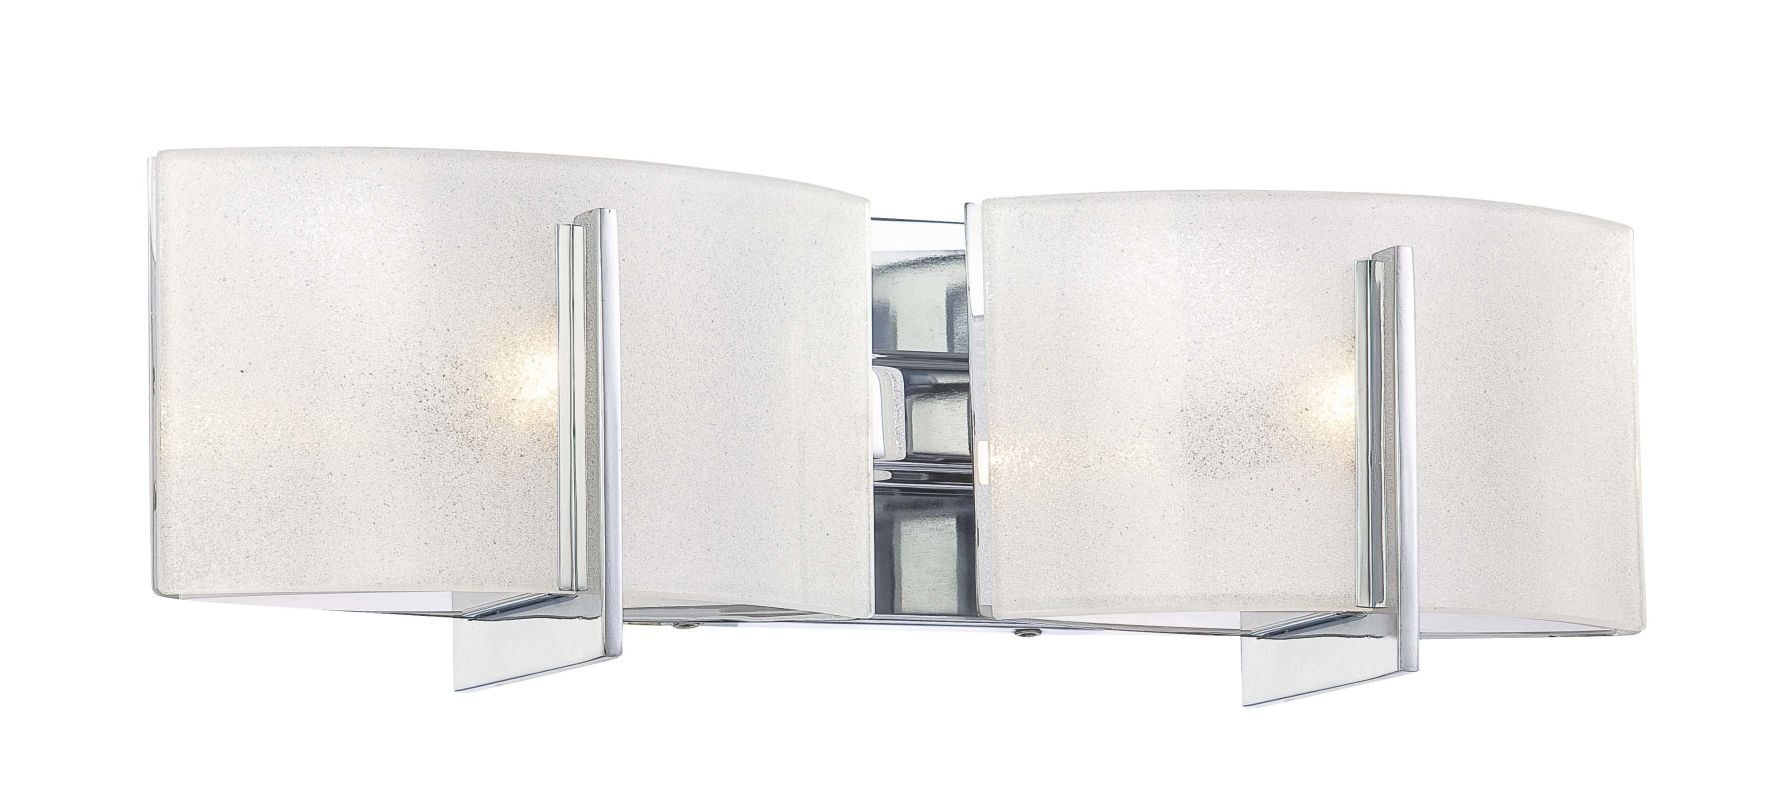 Minka Lavery 6392-77 Chrome 2 Light Bathroom Vanity Light from the Clartu00e9 Collection ...